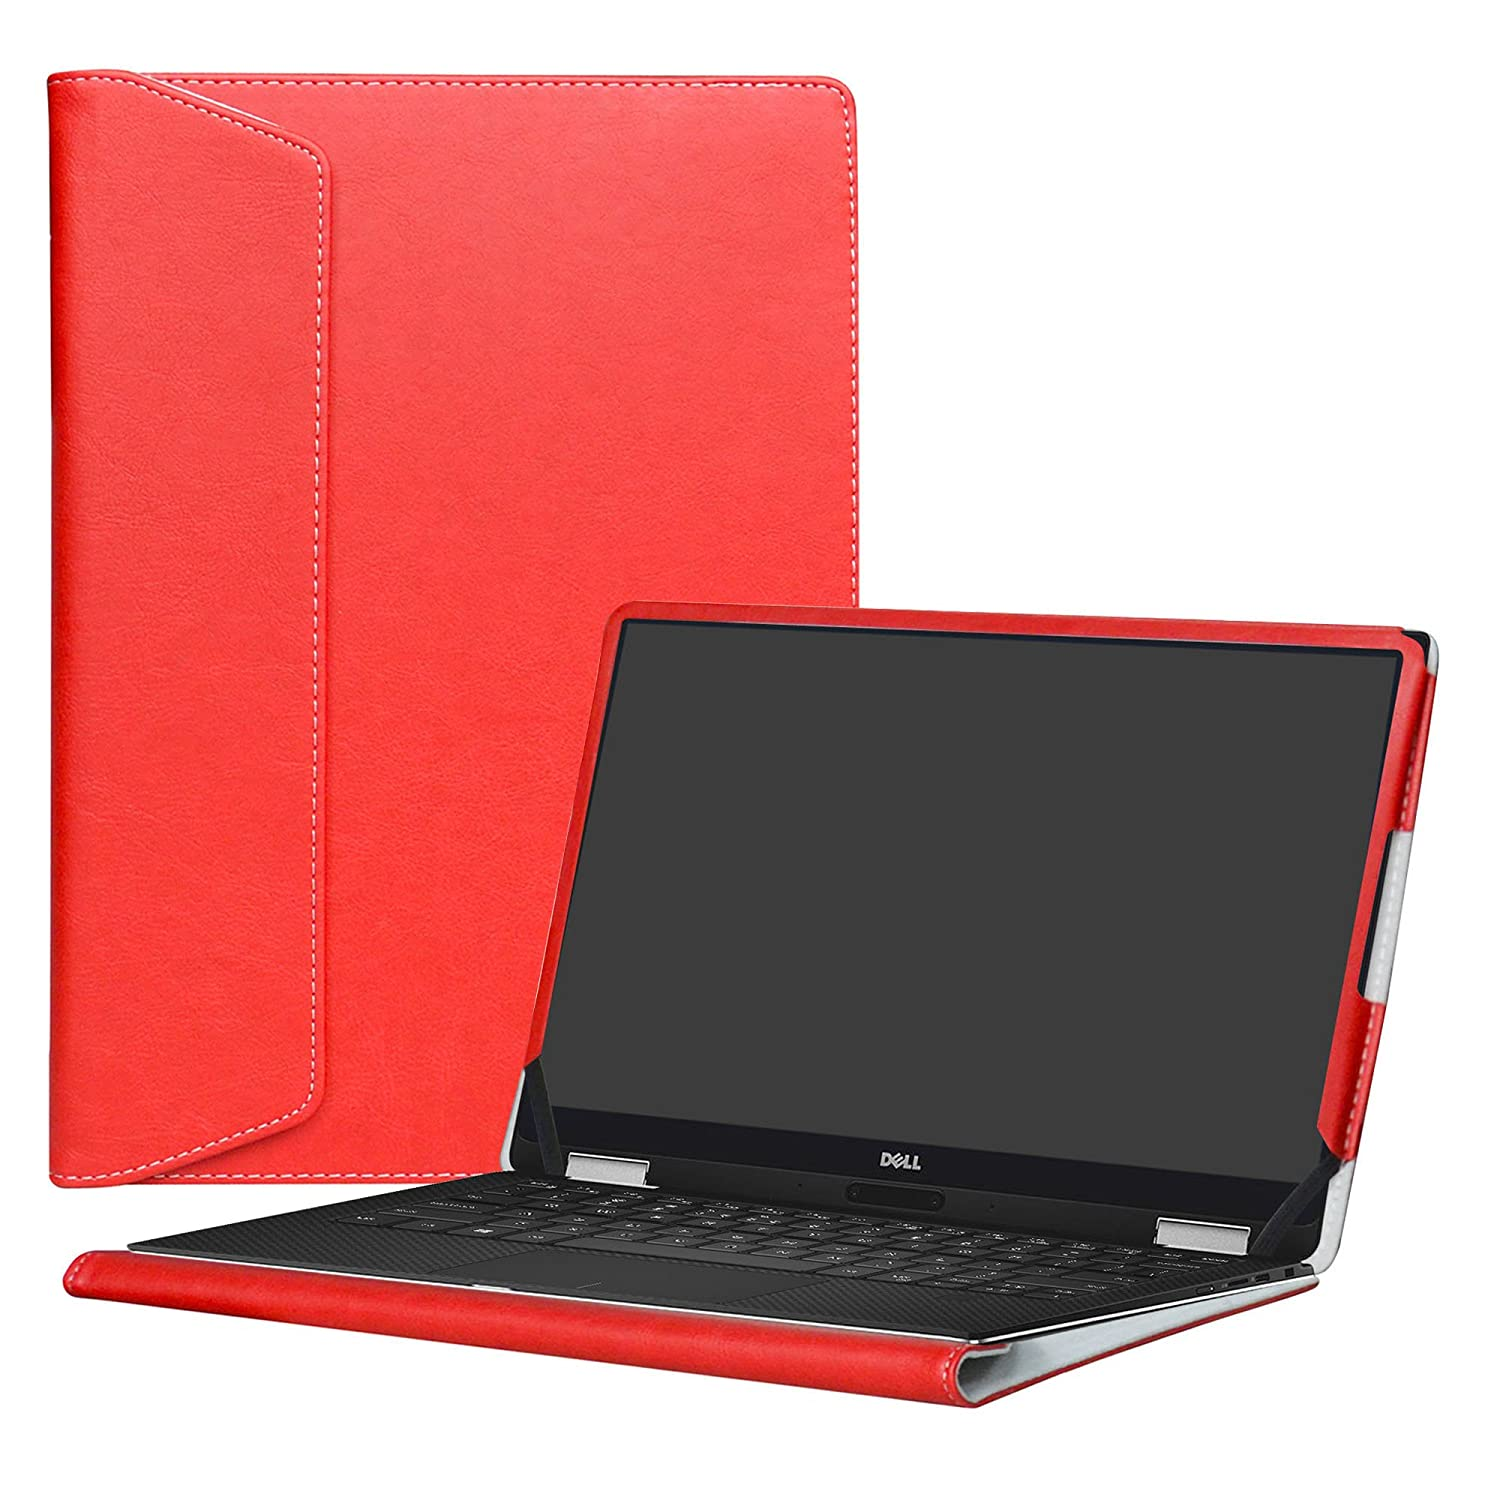 Alapmk Protective Case Cover For 156 Dell Inspiron 15 5000 Series 3576 5570 5575 5566 5555